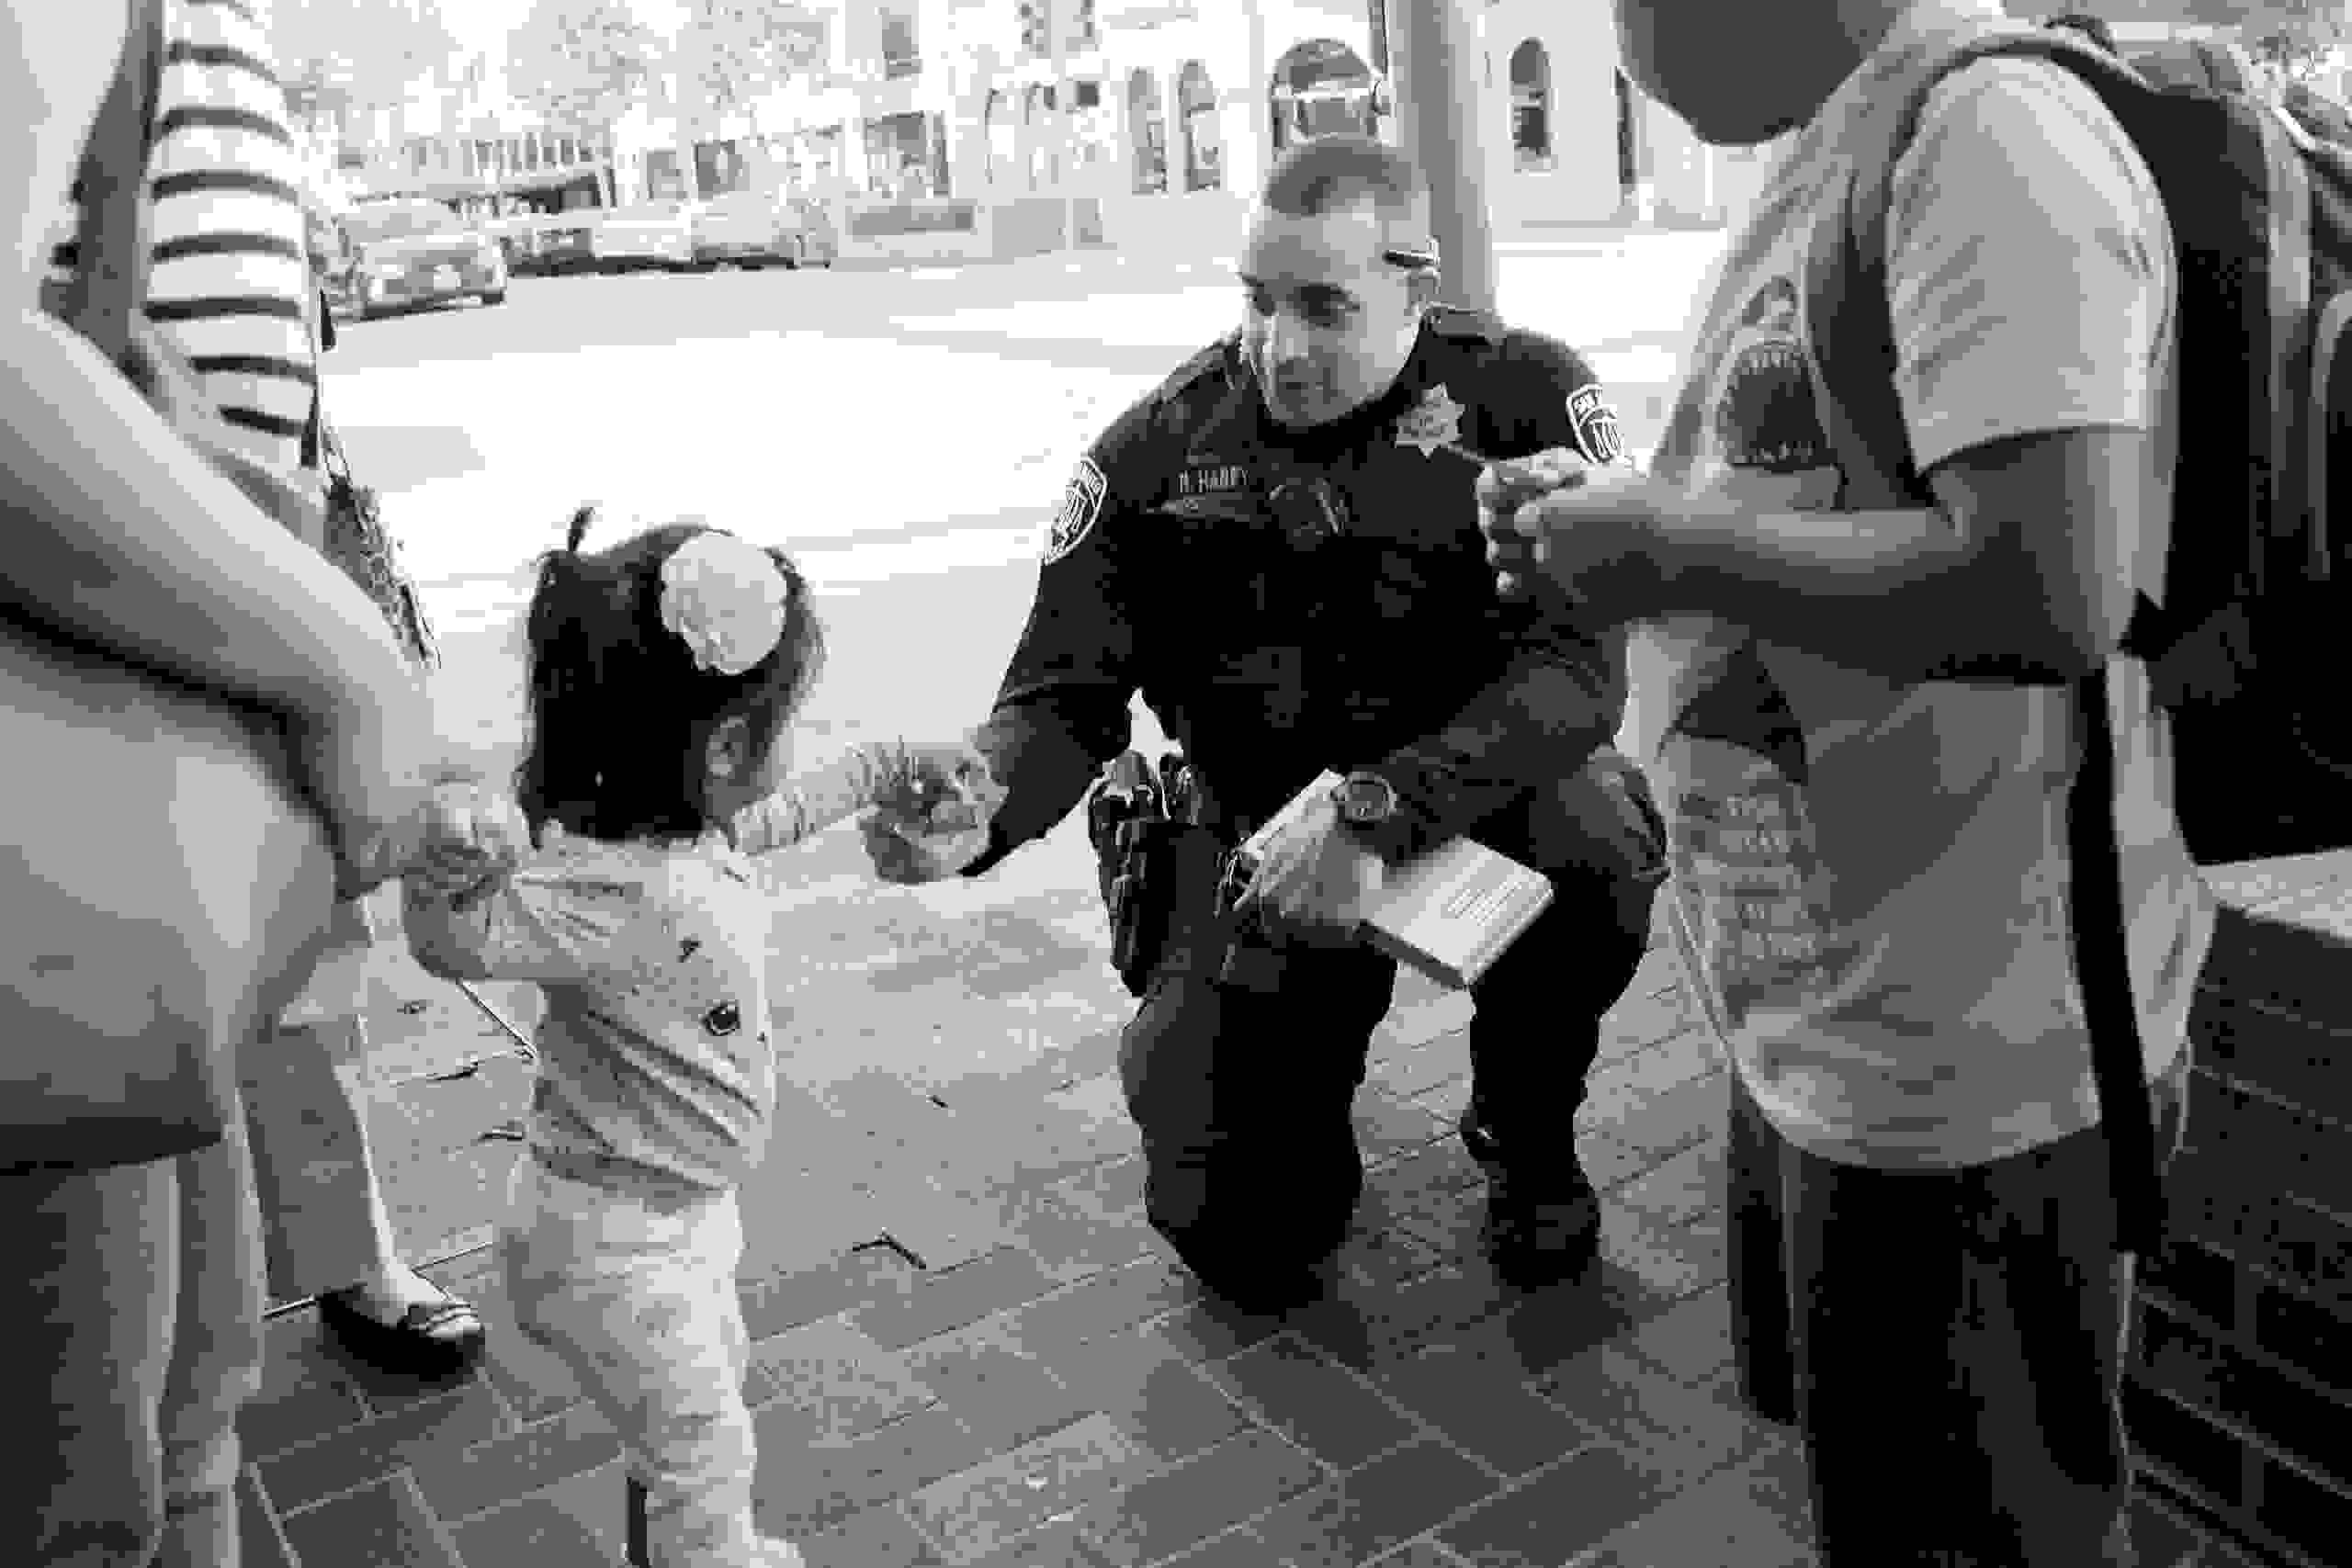 Police officer giving a sticker to a child.